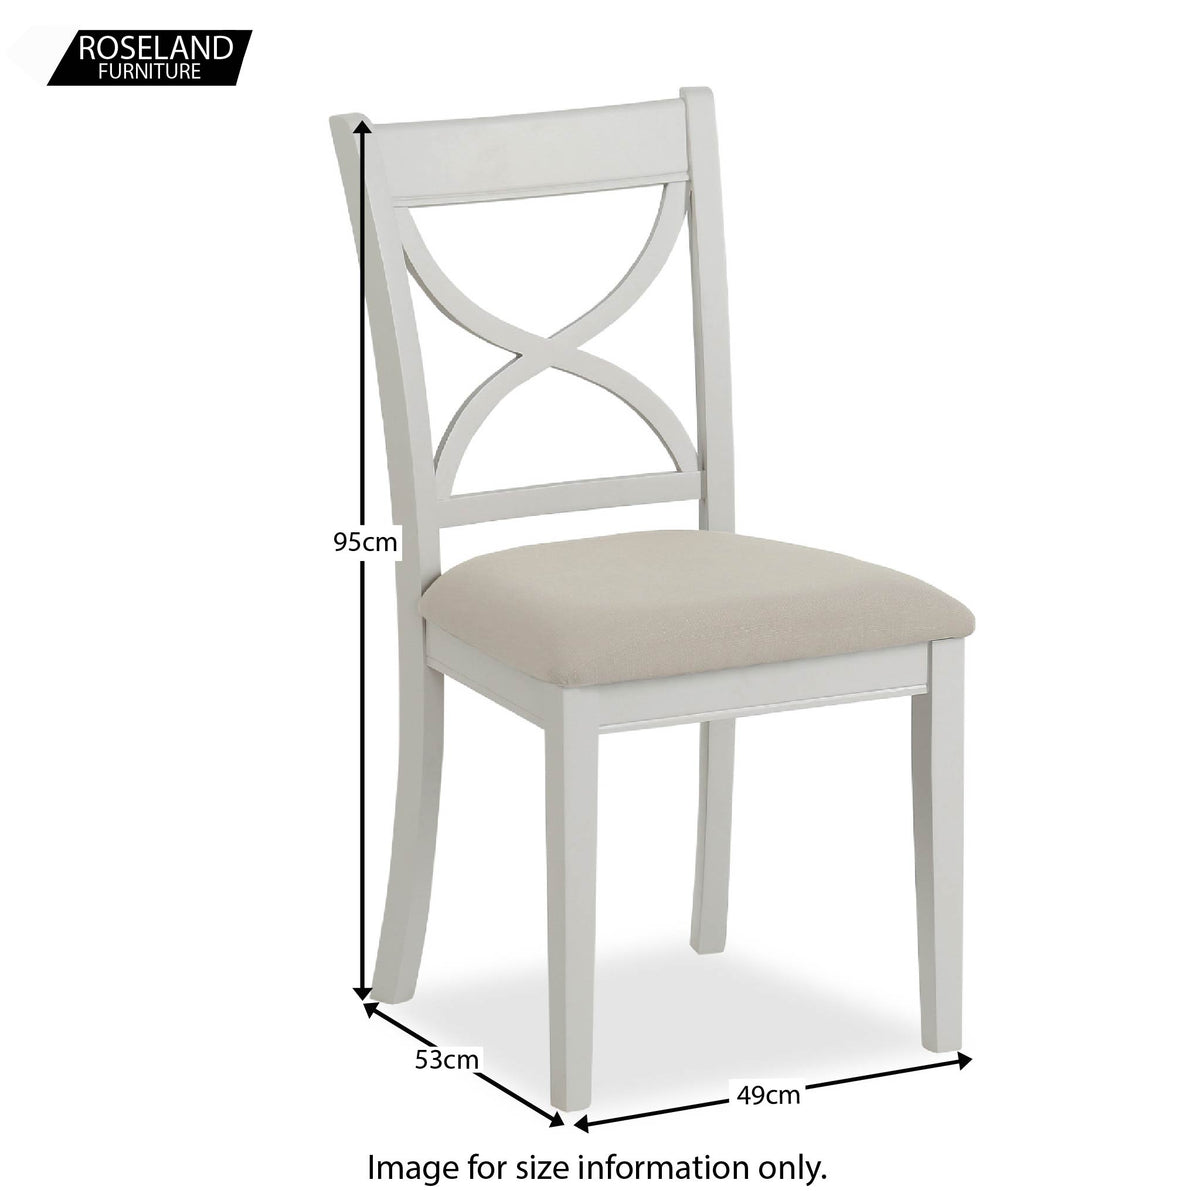 Dimensions of the Melrose Grey Dining Chair from Roseland Furniture